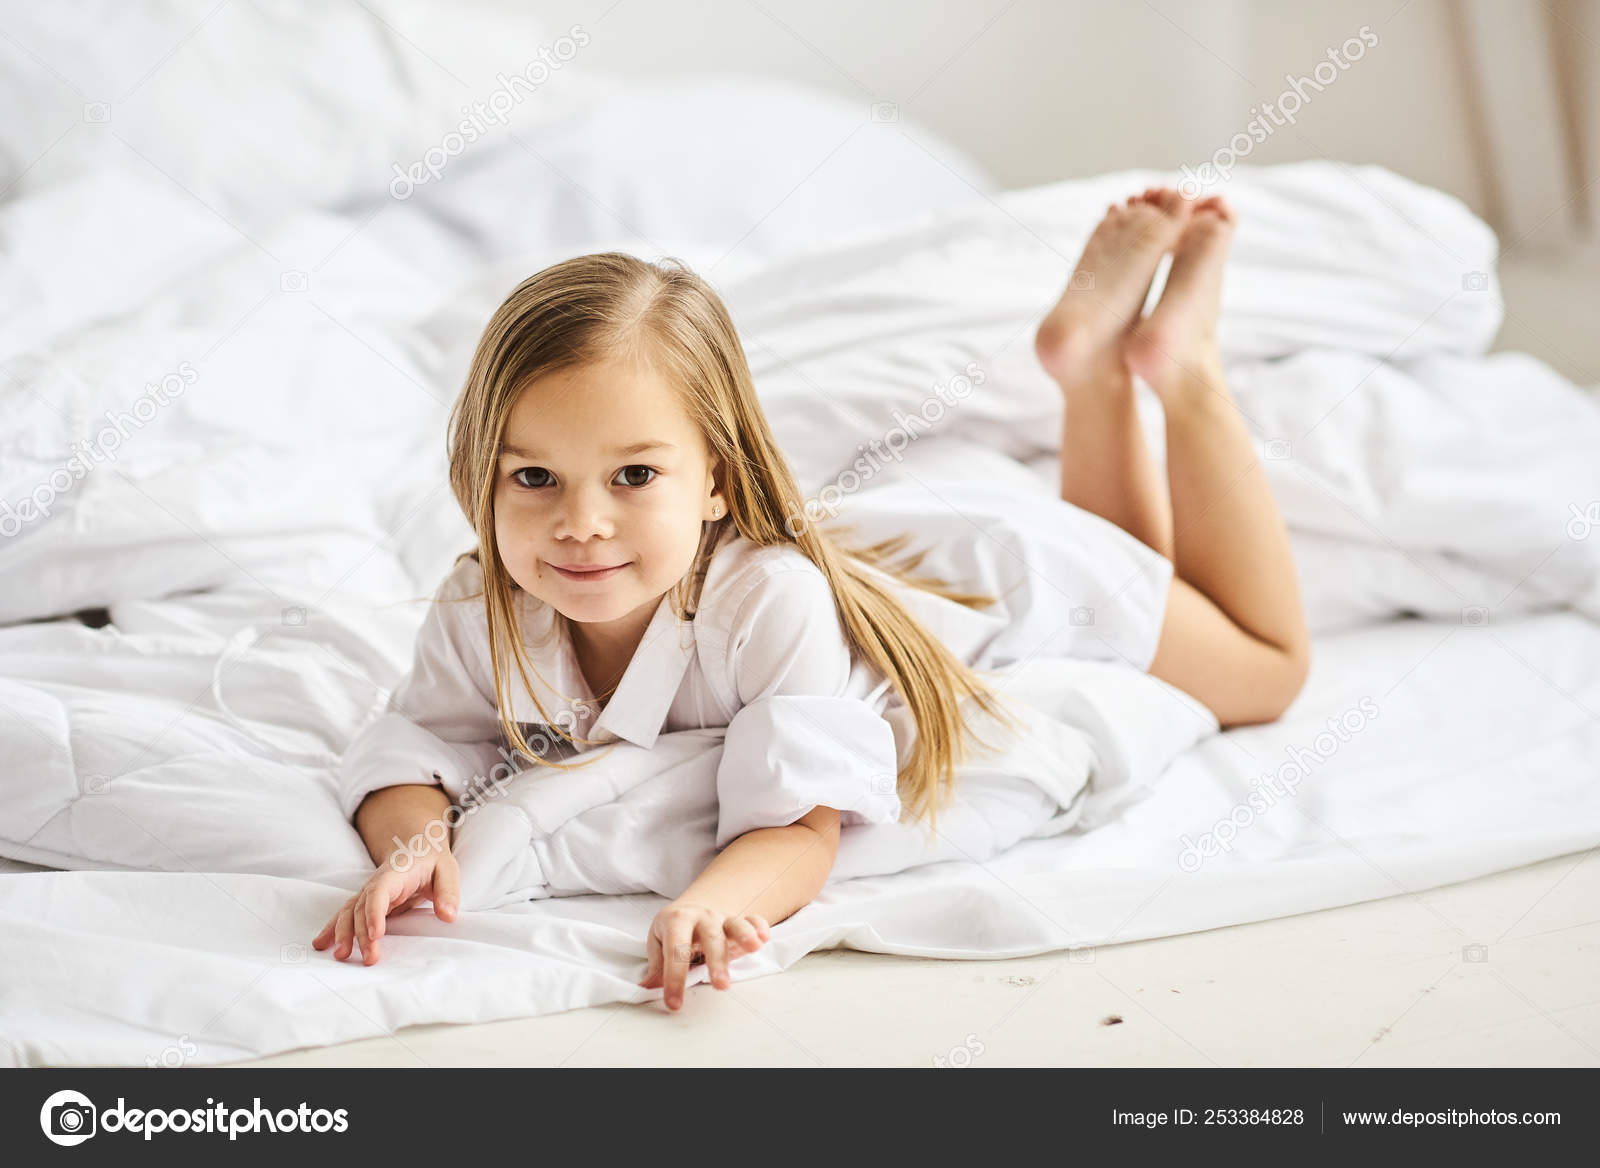 Portrait Beautiful Little Girl Morning Bedroom Stock Photo Image By C Life 253384828